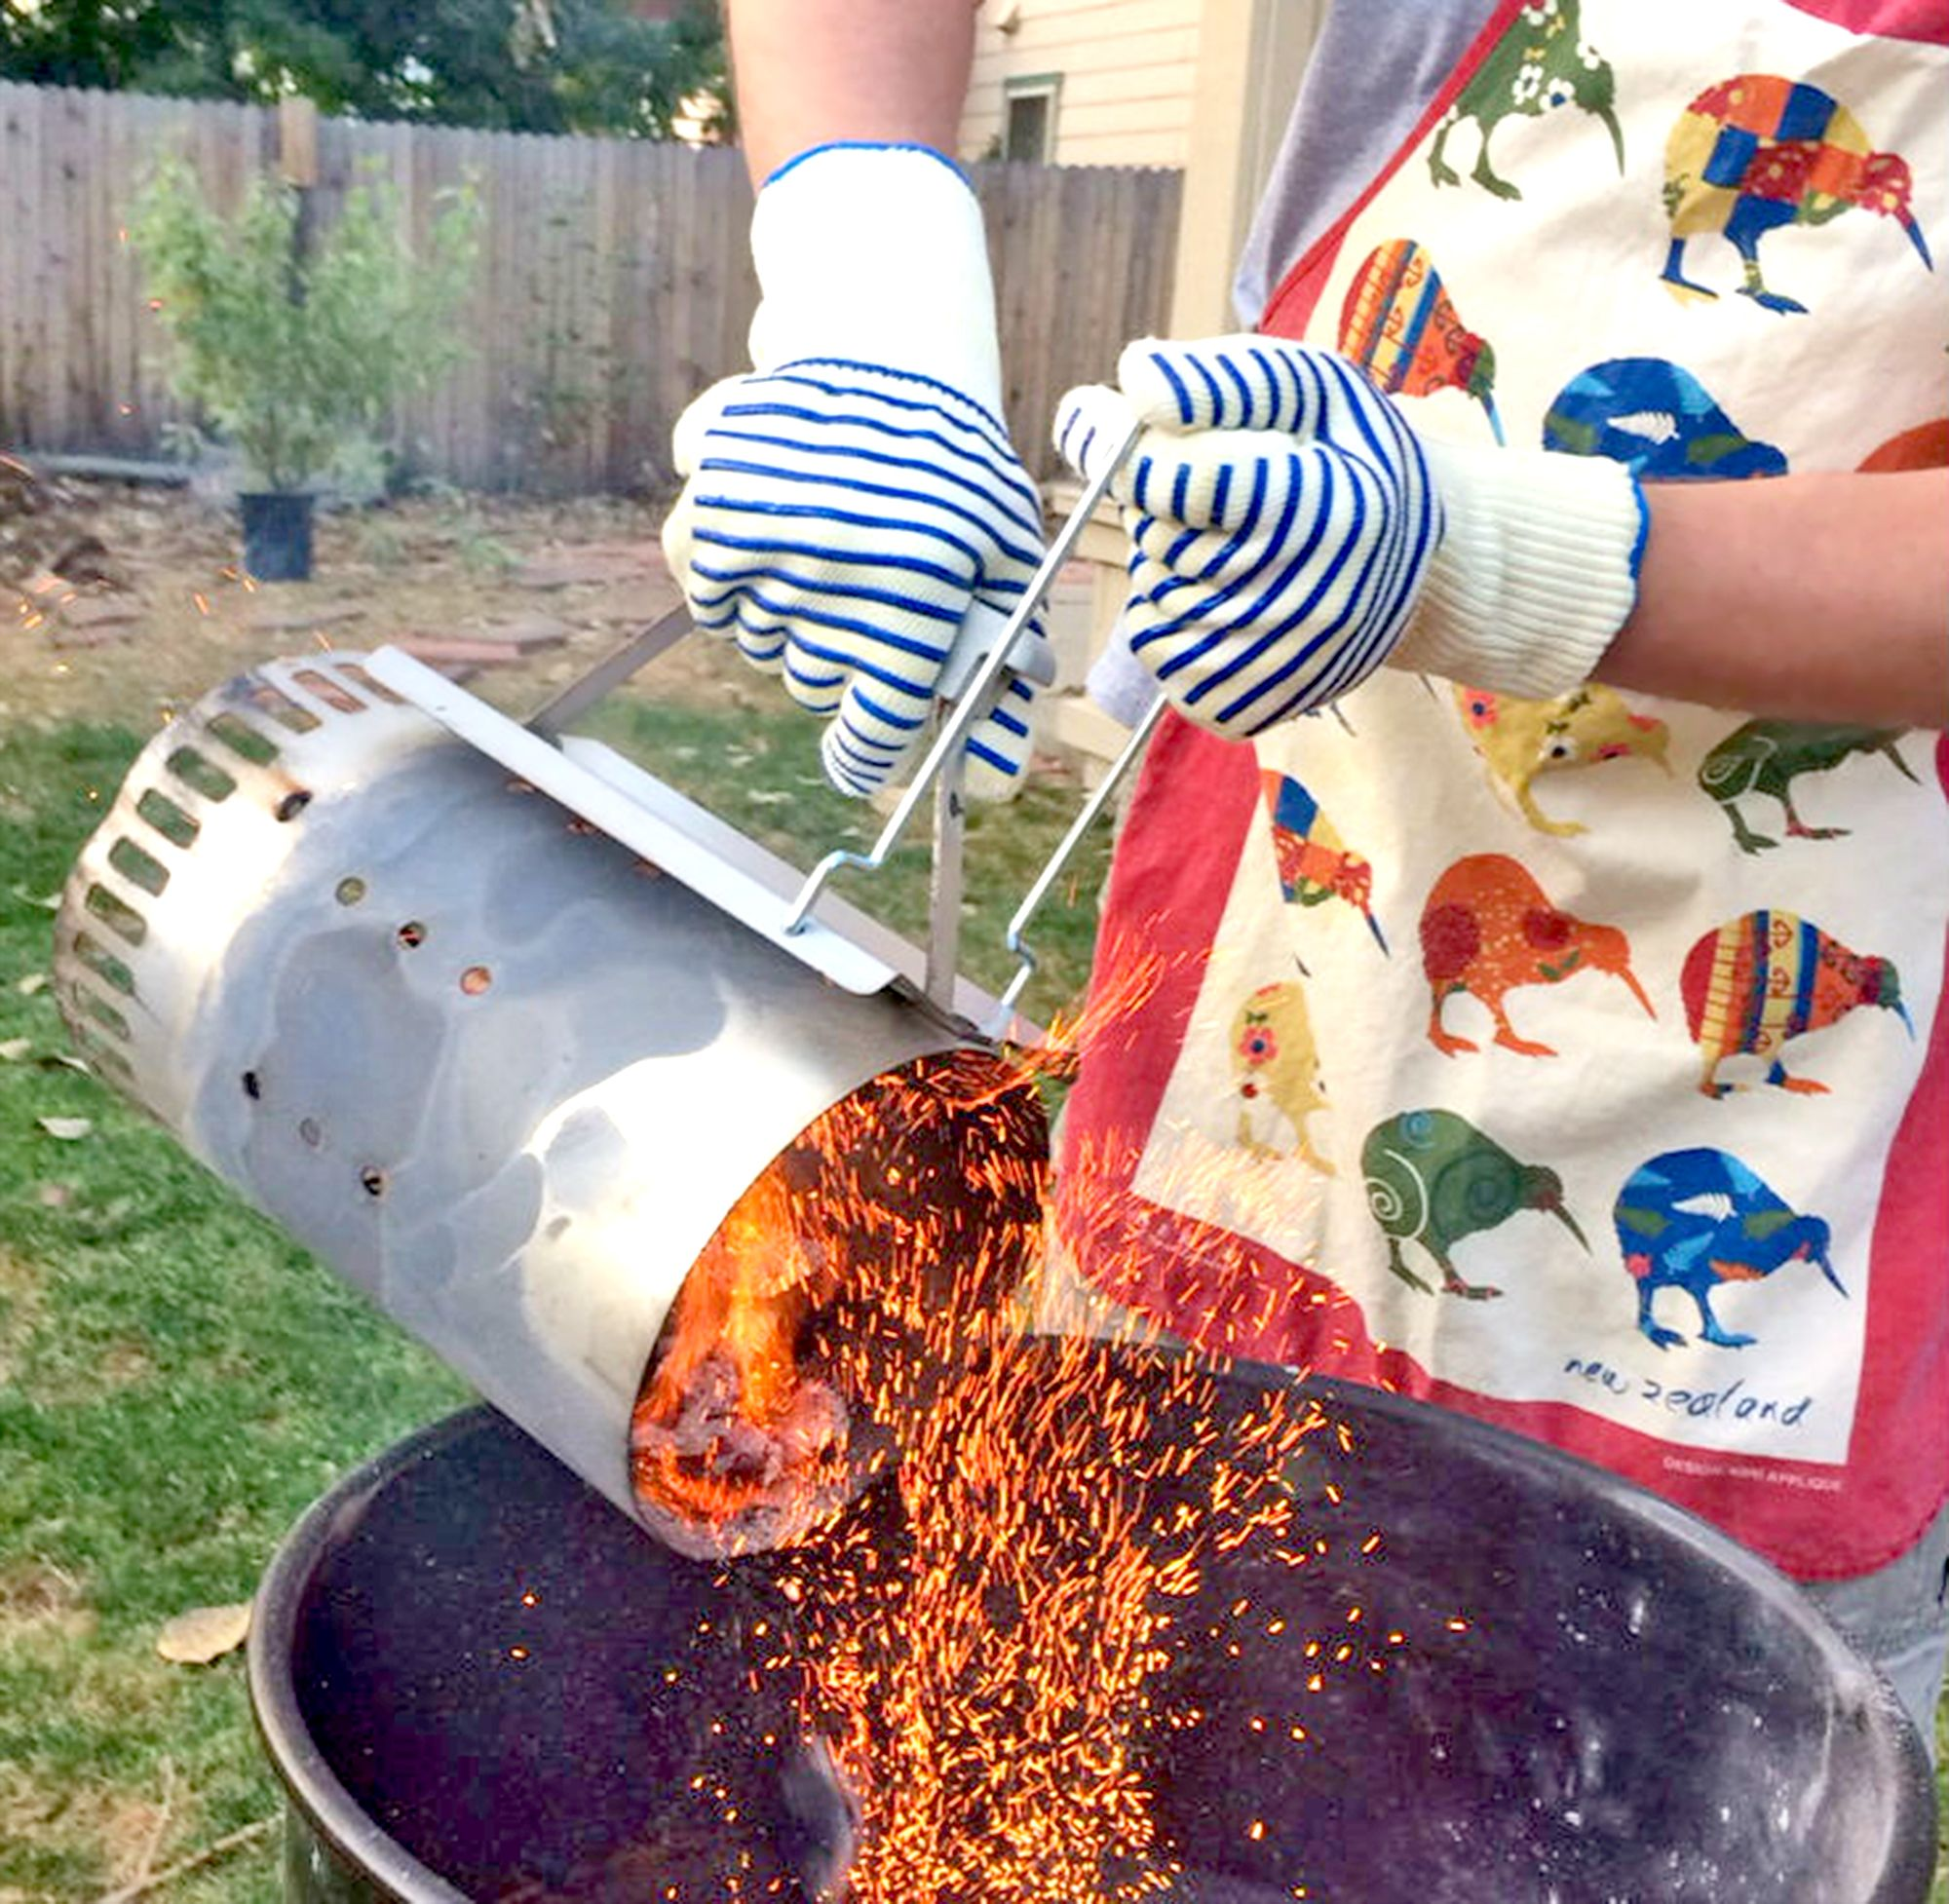 The Outdoors Way Grilling Gloves in Action! Now at Amazon! http://www.amazon.com/Grilling-Resistant-Comfortable-Experience-Protection/dp/B0147VFZ3Y/?keywords=the+outdoors+way+grilling+gloves&qid=1443751444&ref=sr_1_9&ie=UTF8&sr=8-9